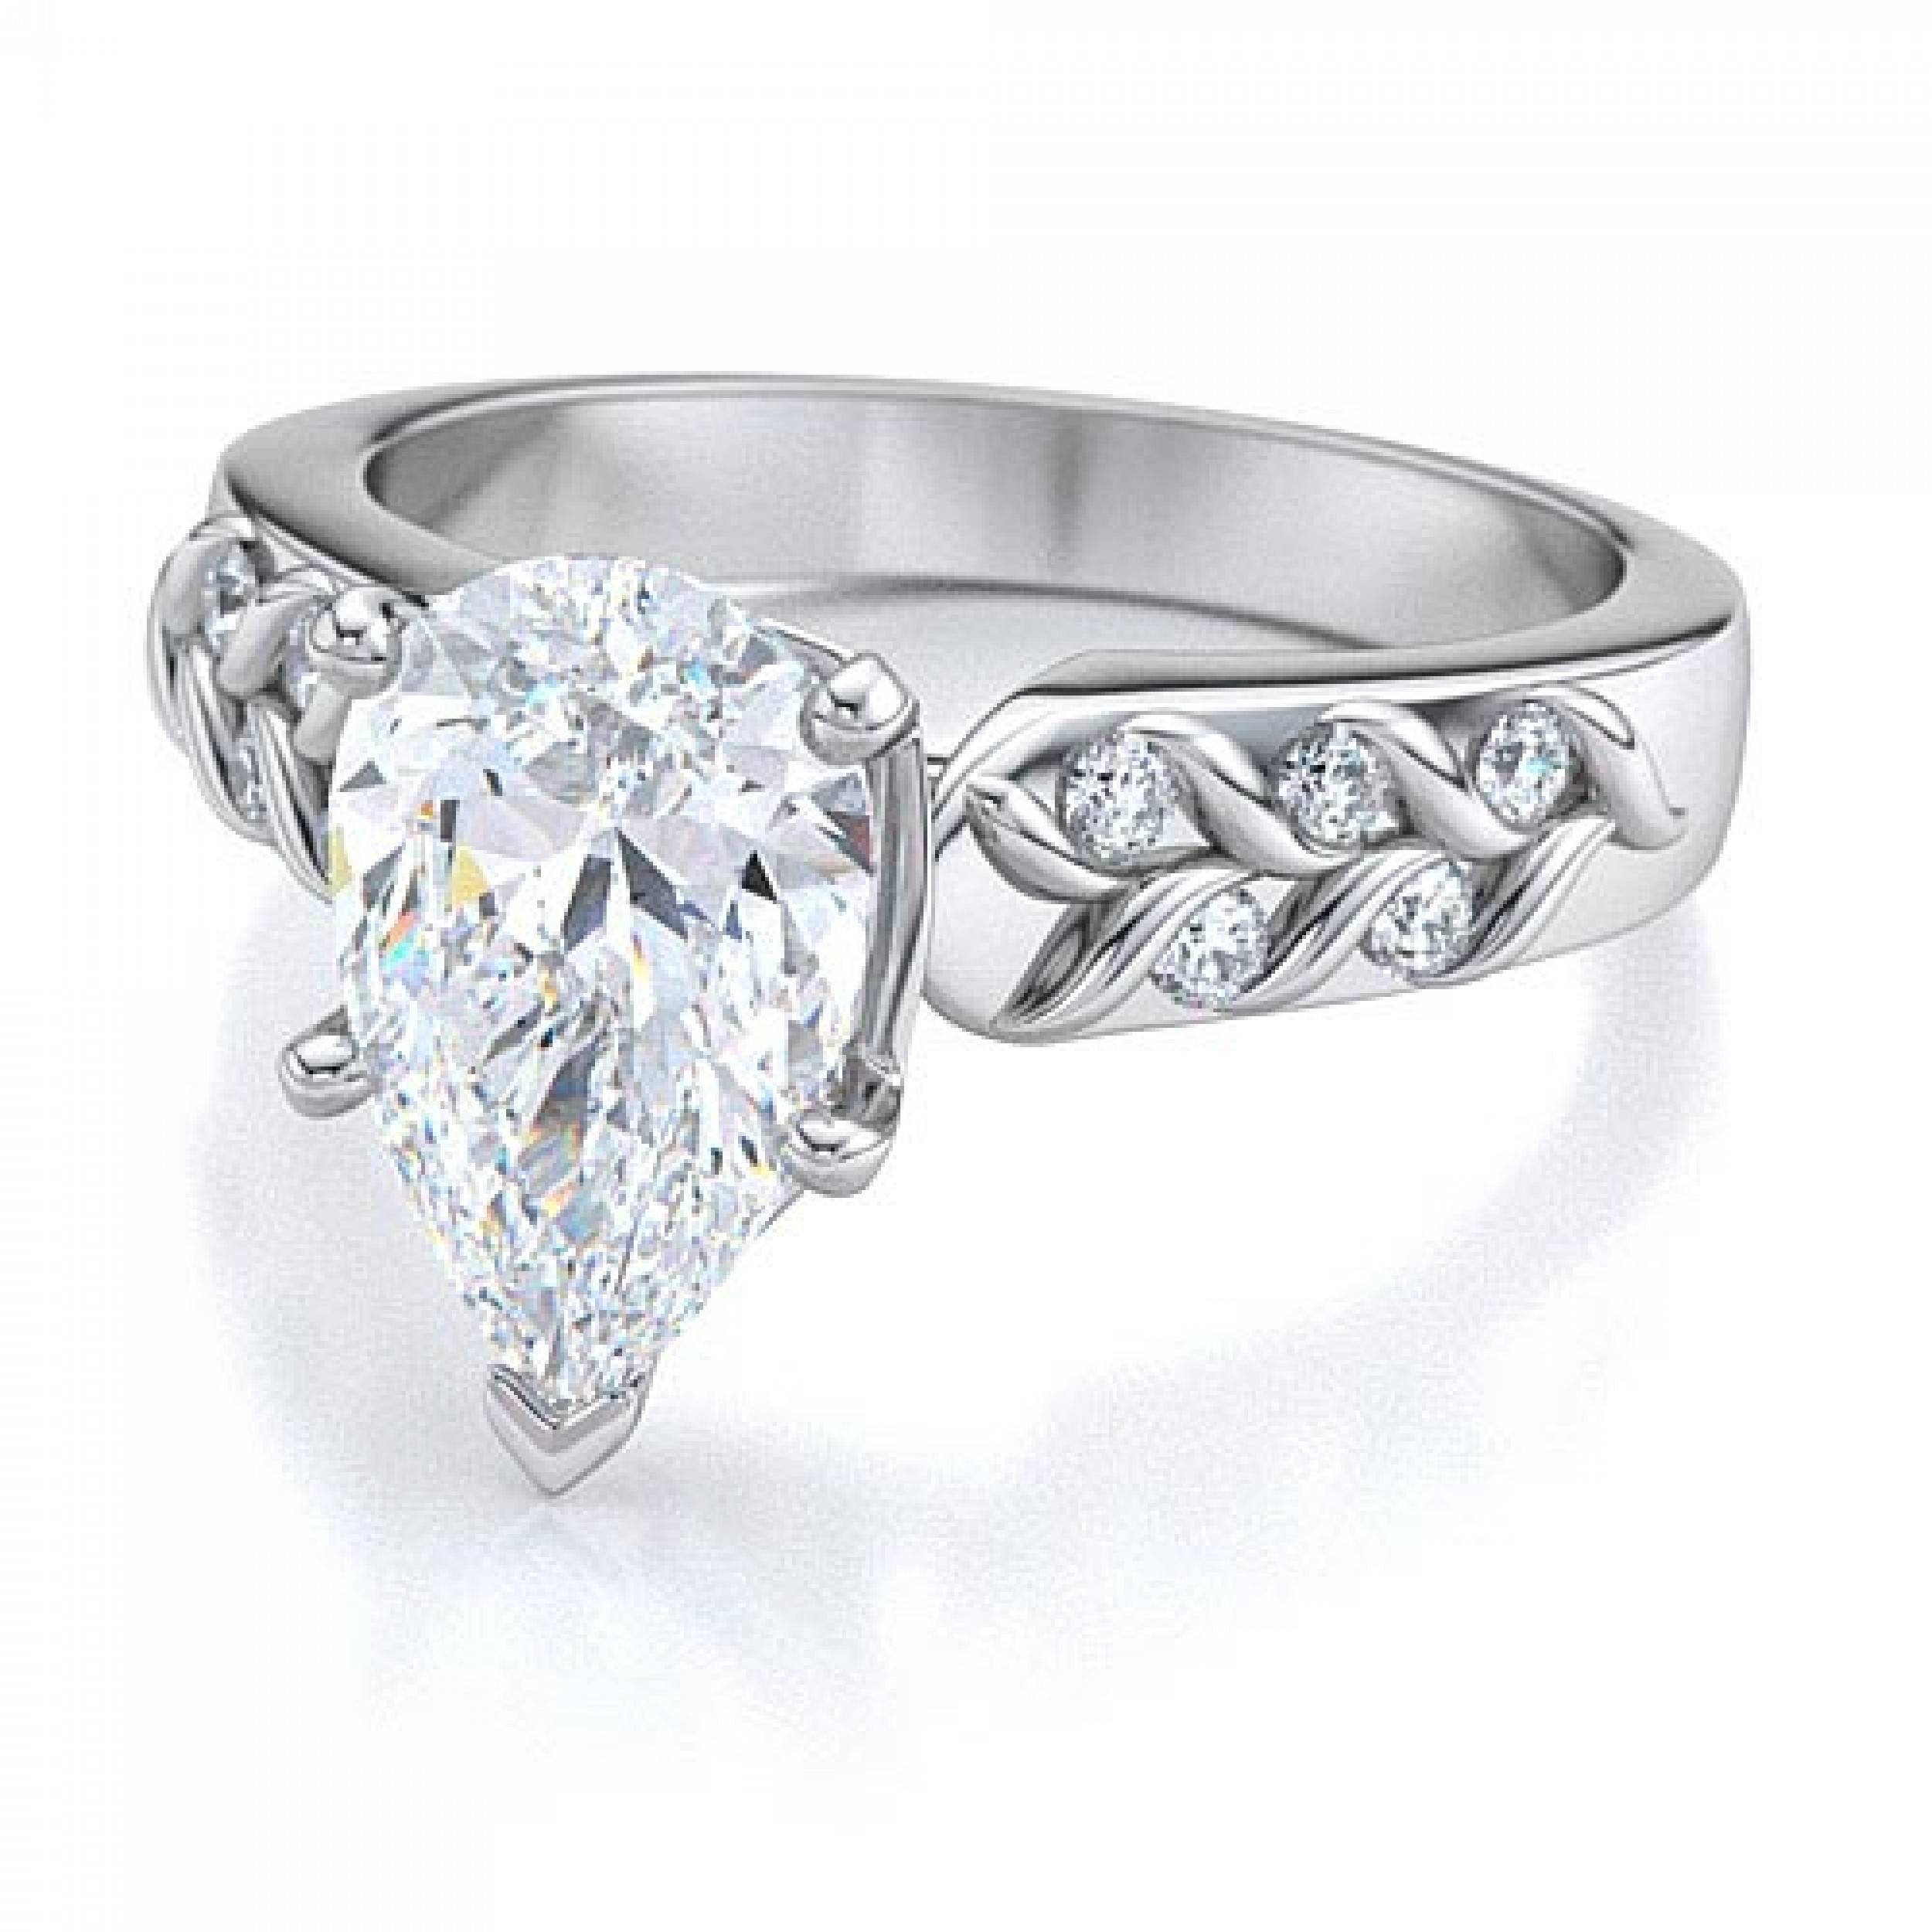 jewellery laura wonderful ring and loyes the over rub diamond setting of world with engagement wide settings